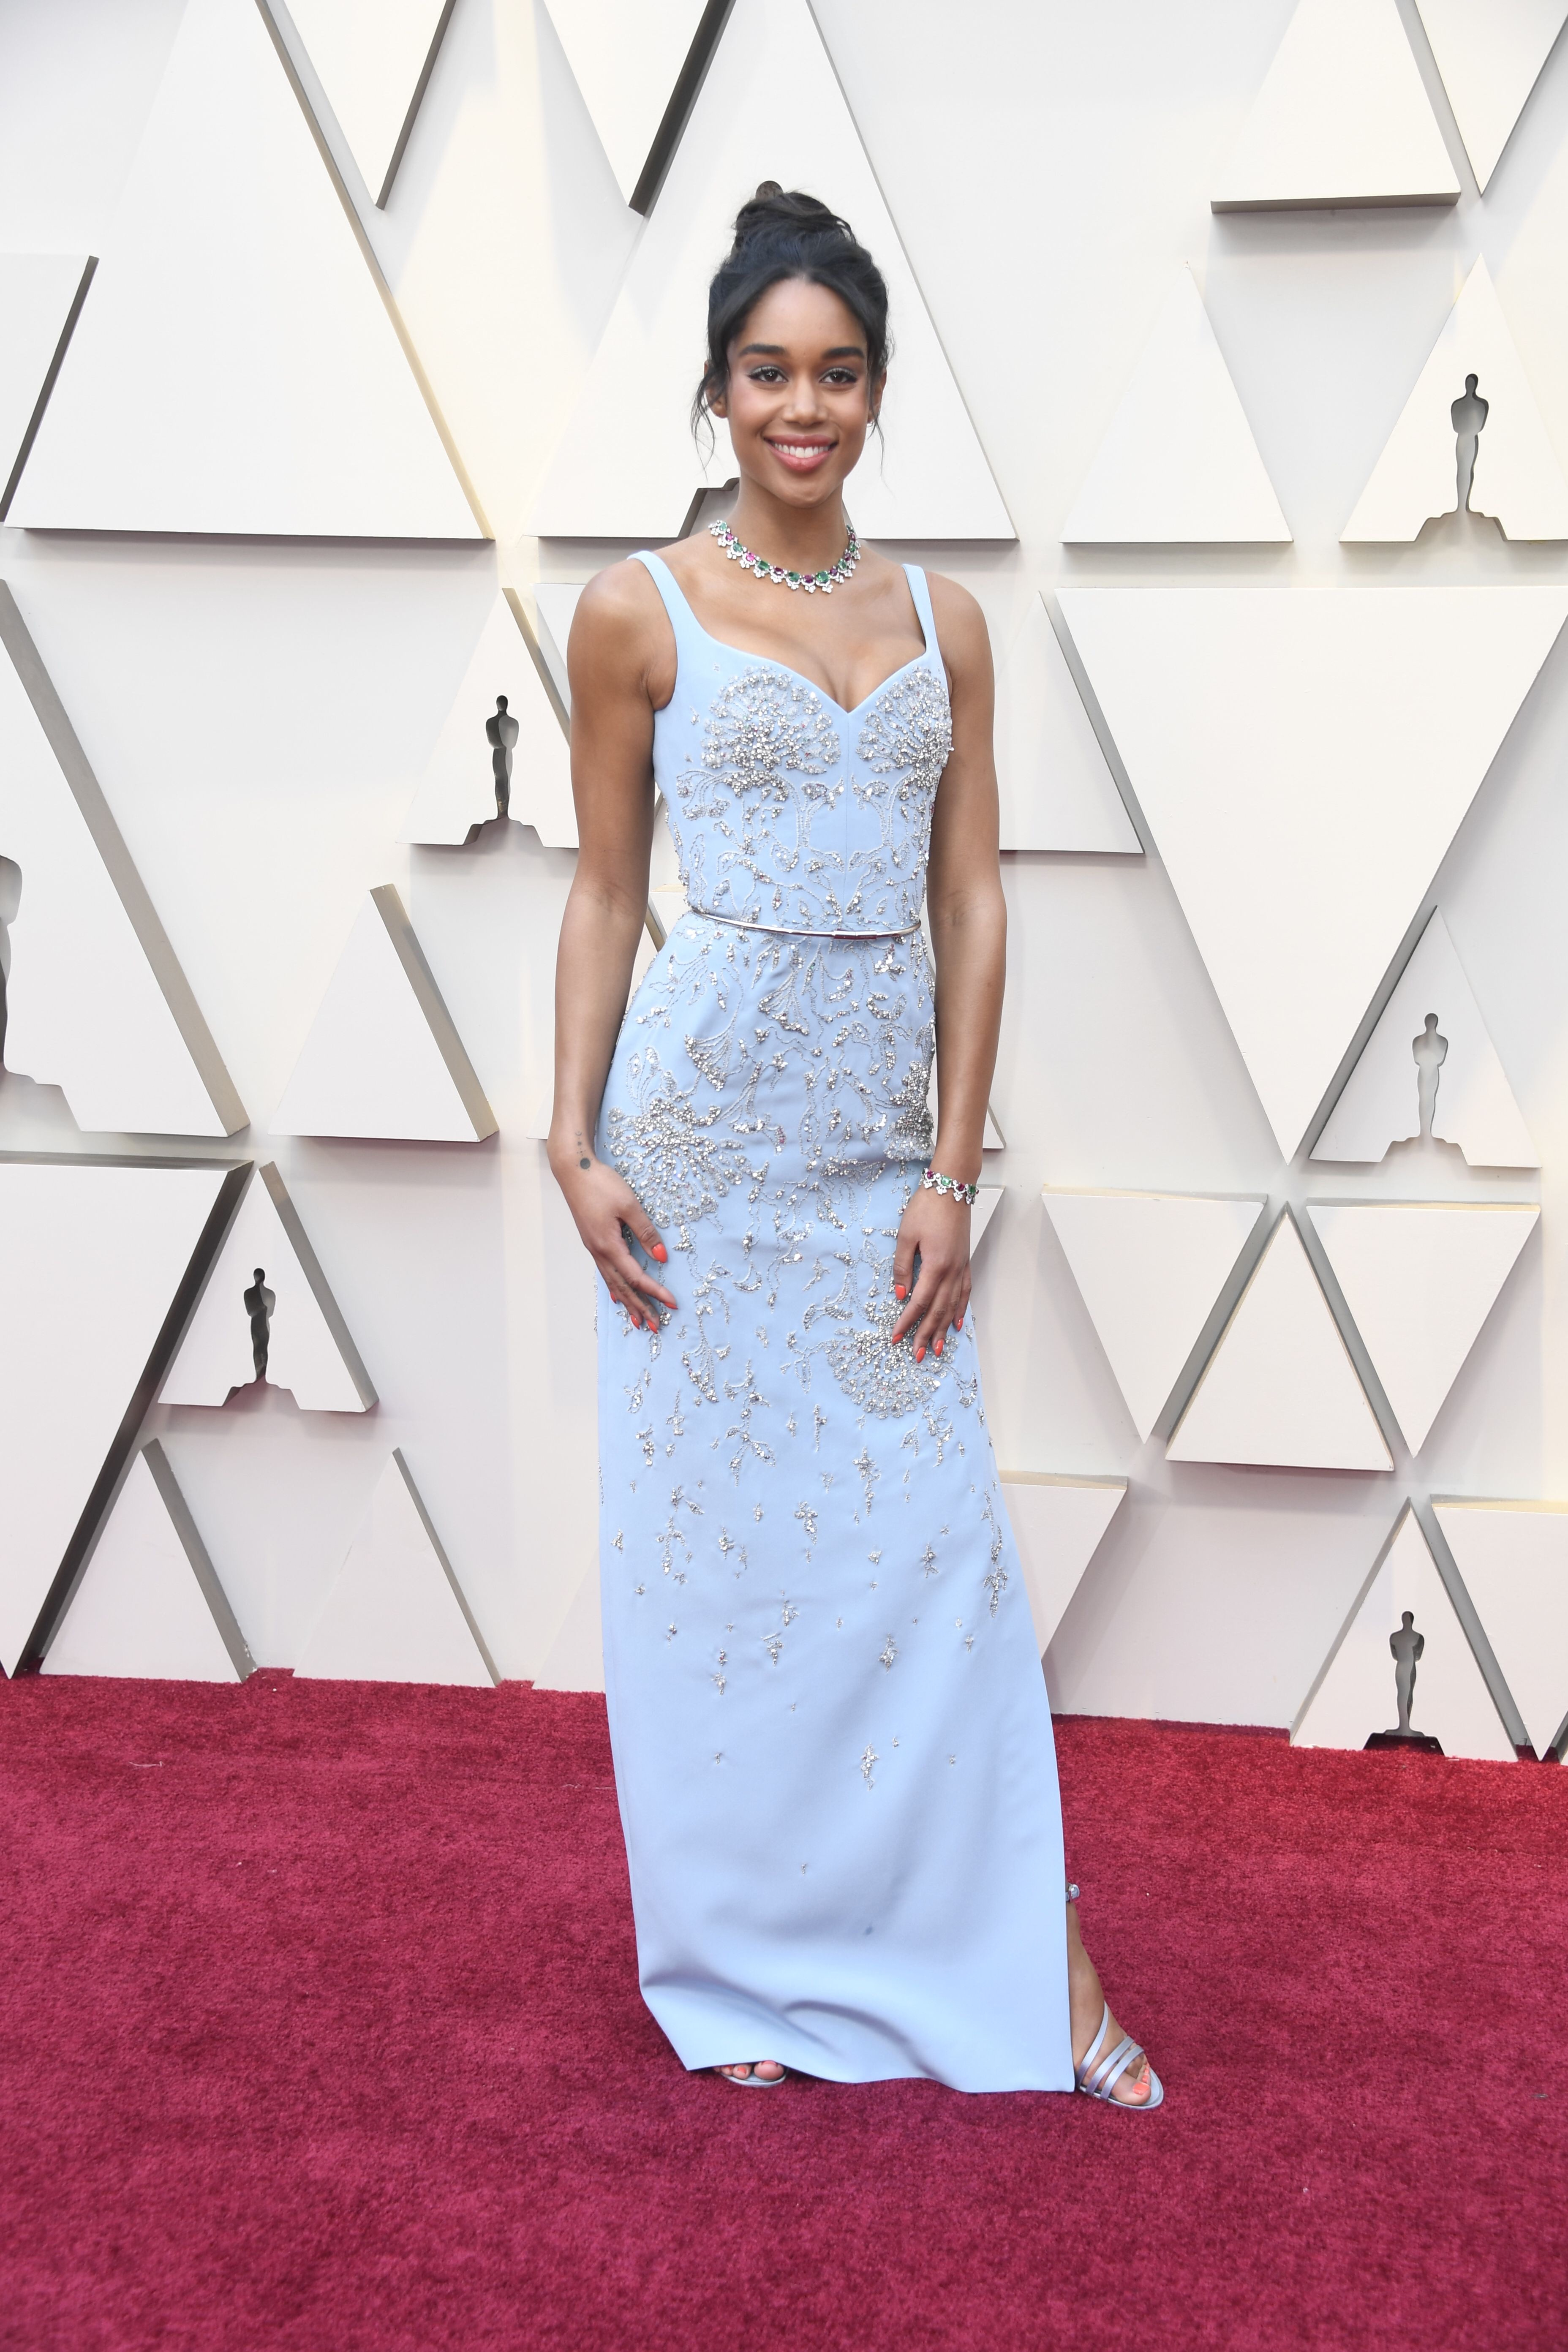 Actress Laura Harrier wears a custom-made, 'eco-friendly' Louis Vuitton dress, partnering with the Red Carpet Green Dress initiative for the 91st annual Academy Awards red carpet.